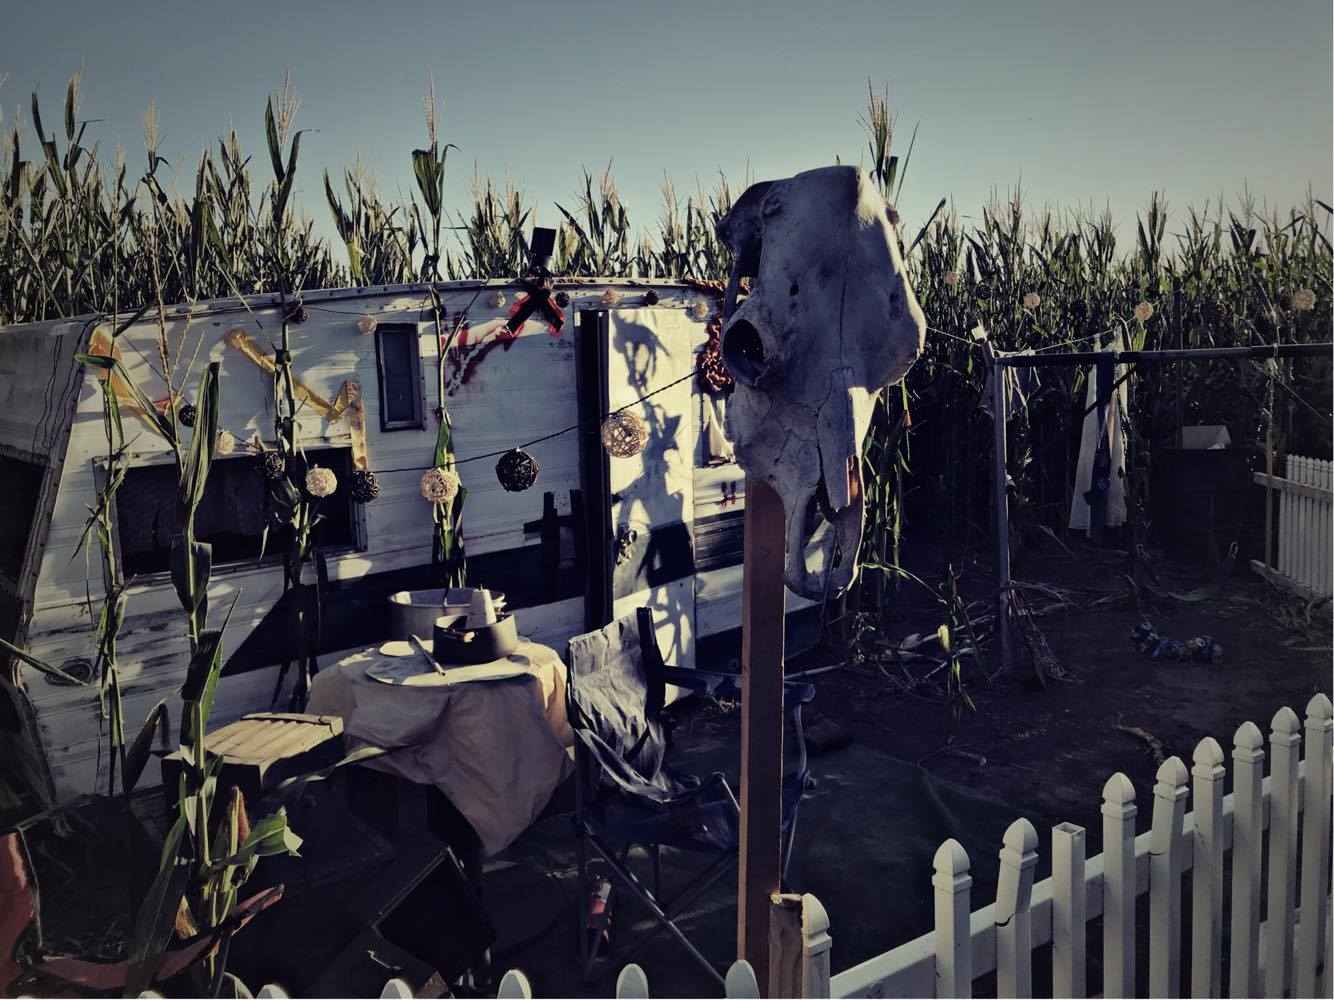 Enter the haunted corn maze if you dare